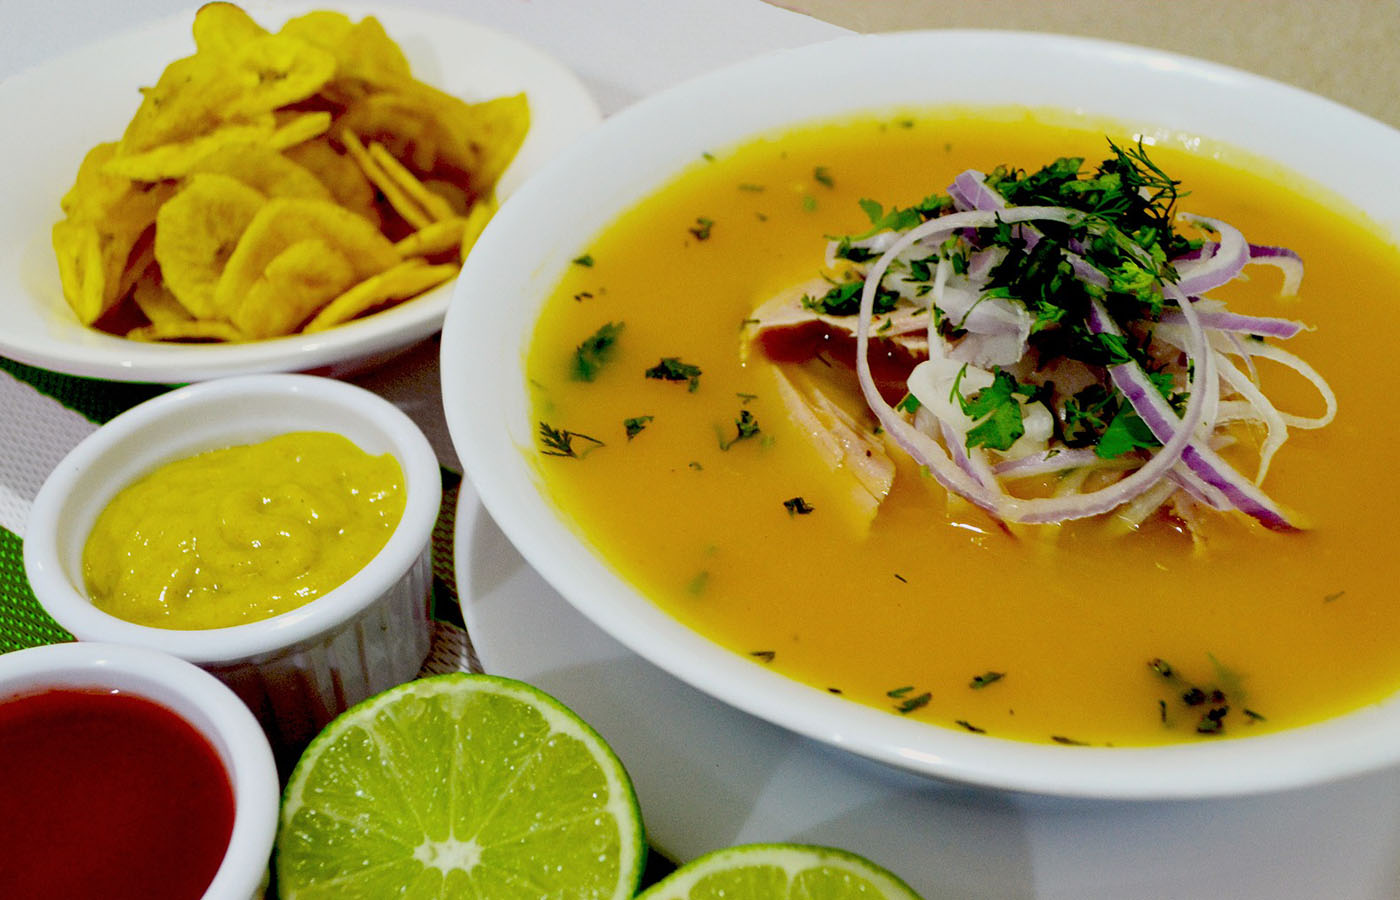 Encebollado - This dish consists of hot soup made with albacore, cassava, onion, and cilantro. It is usually served with fried plantains and sometimes served with rice and bread.This dish originated in the city of Guayaquil as a cheaper alternative to the ceviche. The dish grew popular the 1970s, especially after being a famous remedy for hangovers.This is one of the most traditional dishes in Ecuador, and you can find it all around Ecuador in huecas, markets, and restaurants.